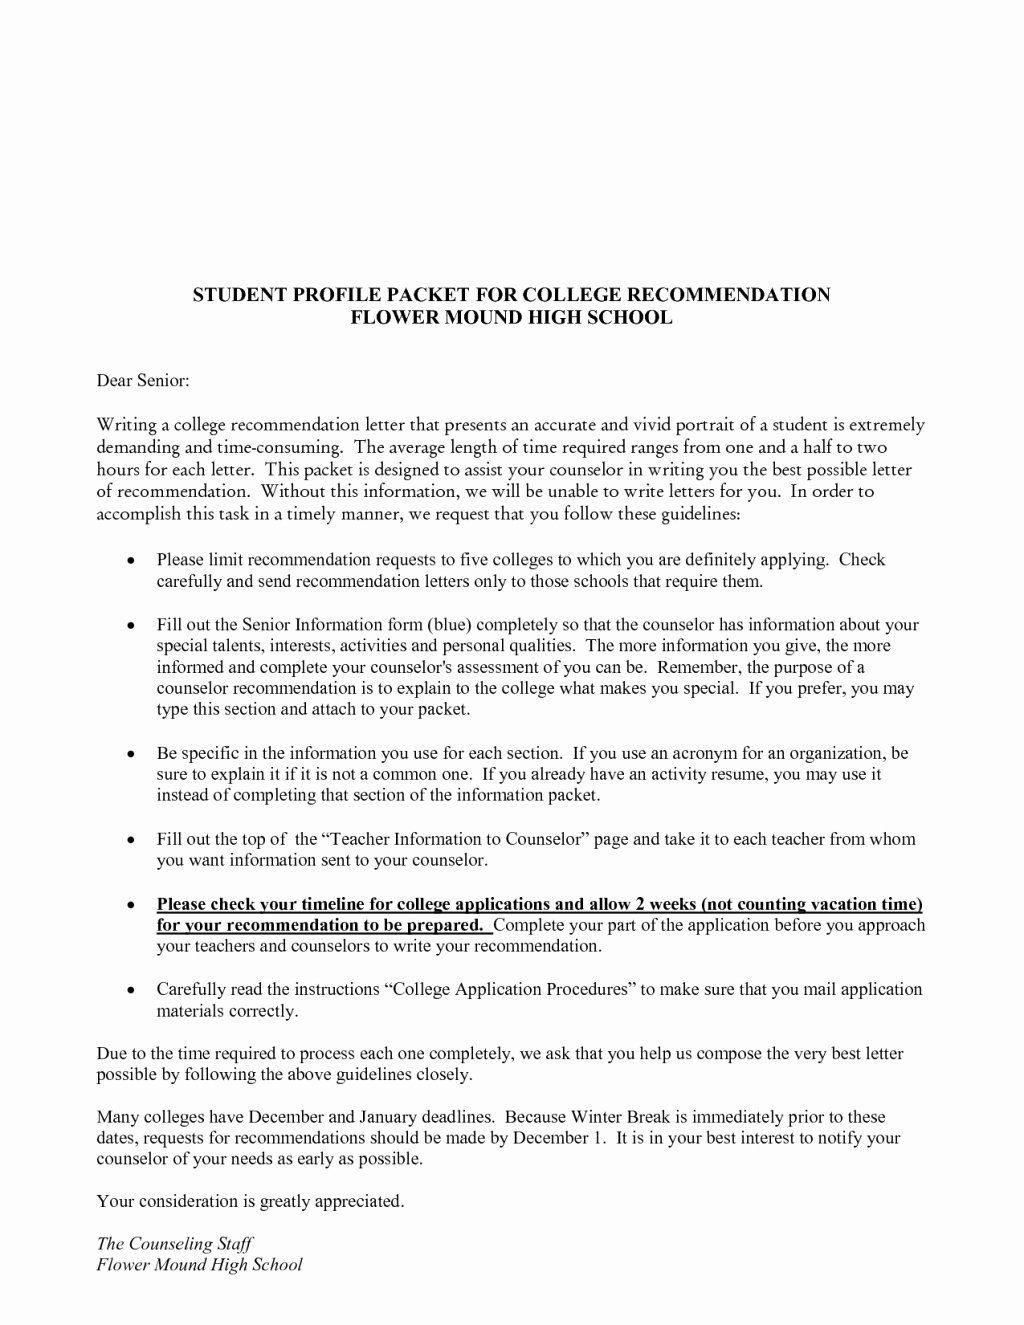 Alumni Letter Of Recommendation Awesome Alumni Letter Re Mendation Template Samples